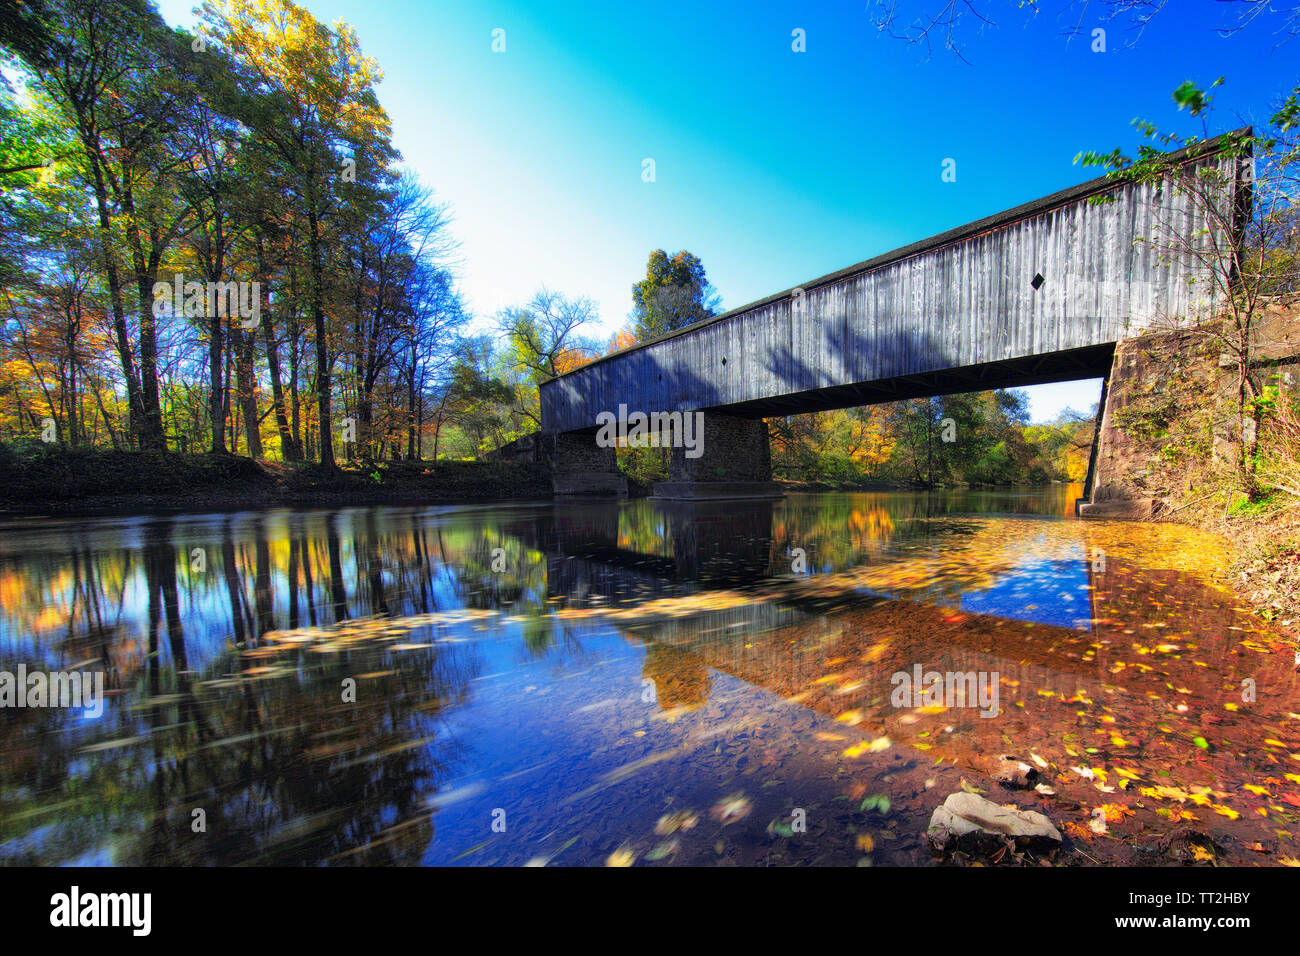 Low Angle View of the Schoefield Ford Covered Bridge, Newton, Pennsylvania Stock Photo